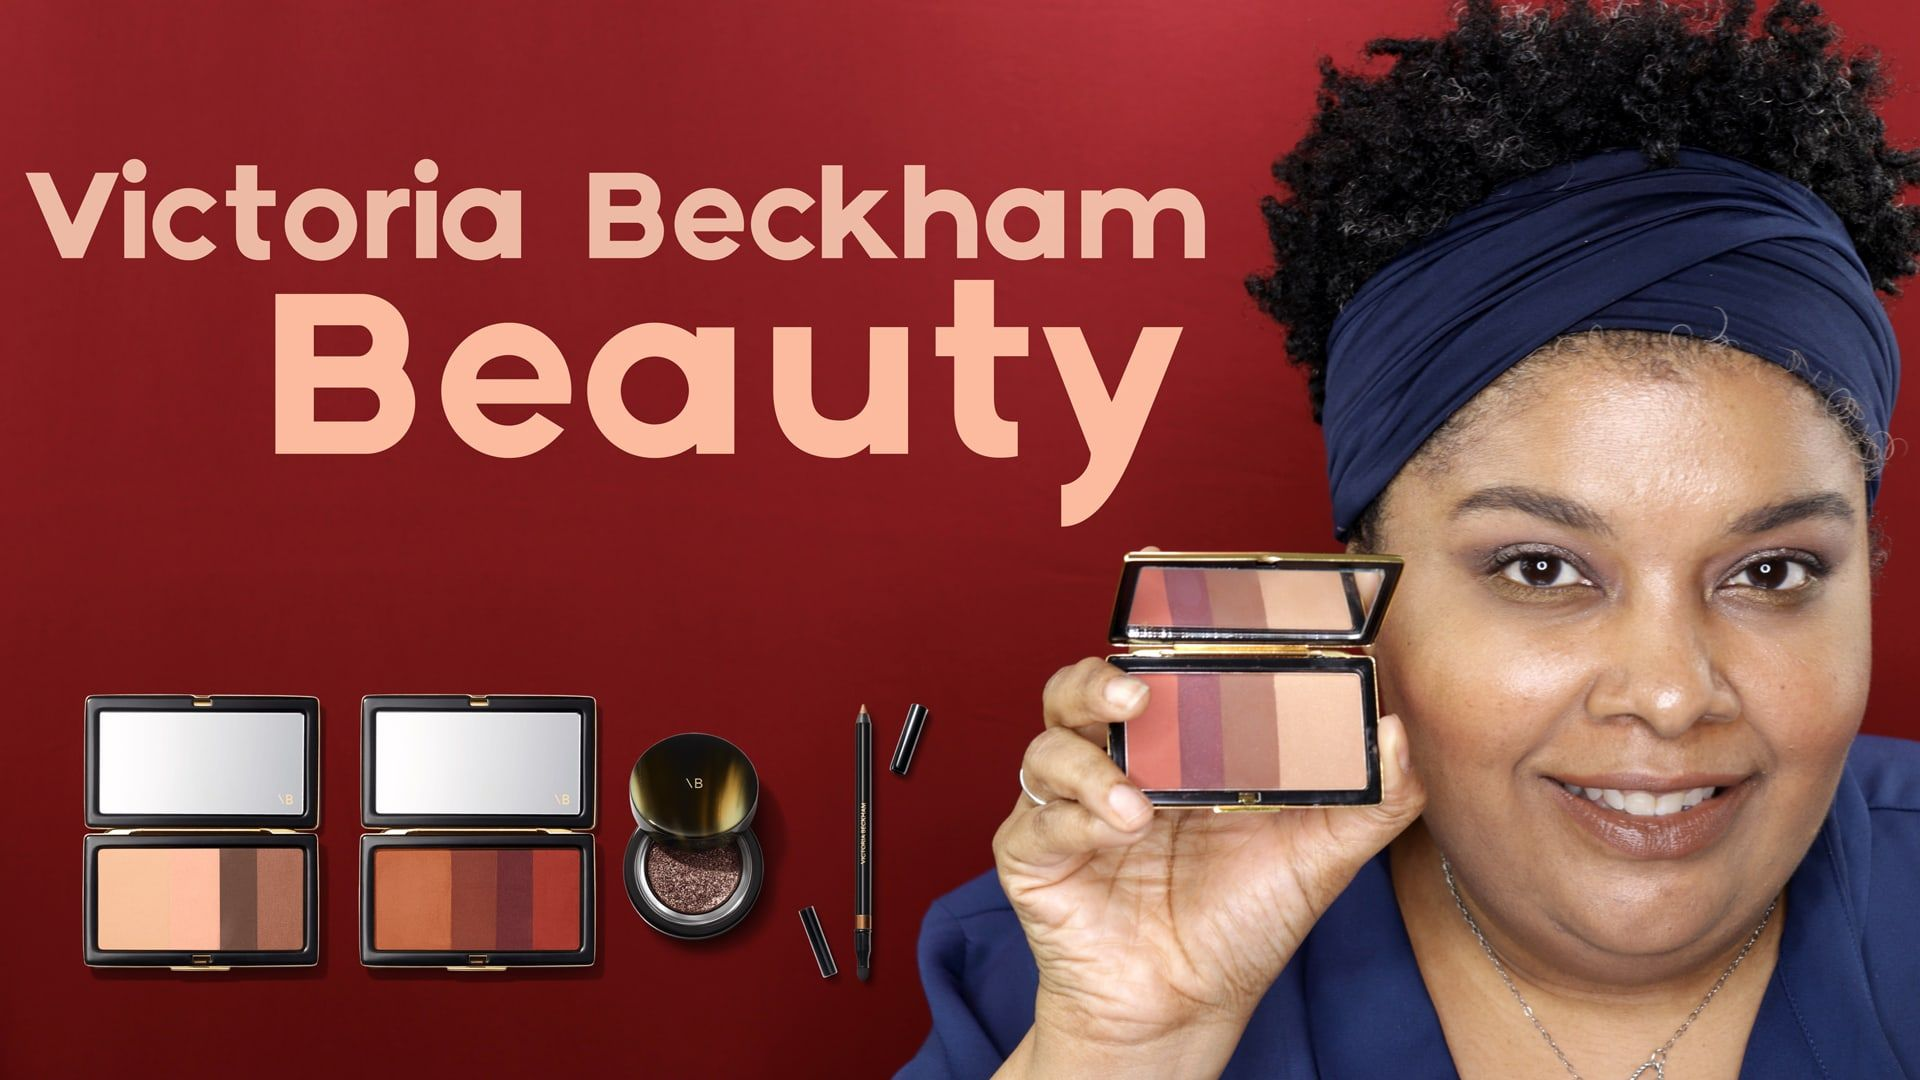 Victoria Beckham Beauty Makeup Review by Breezy Tee